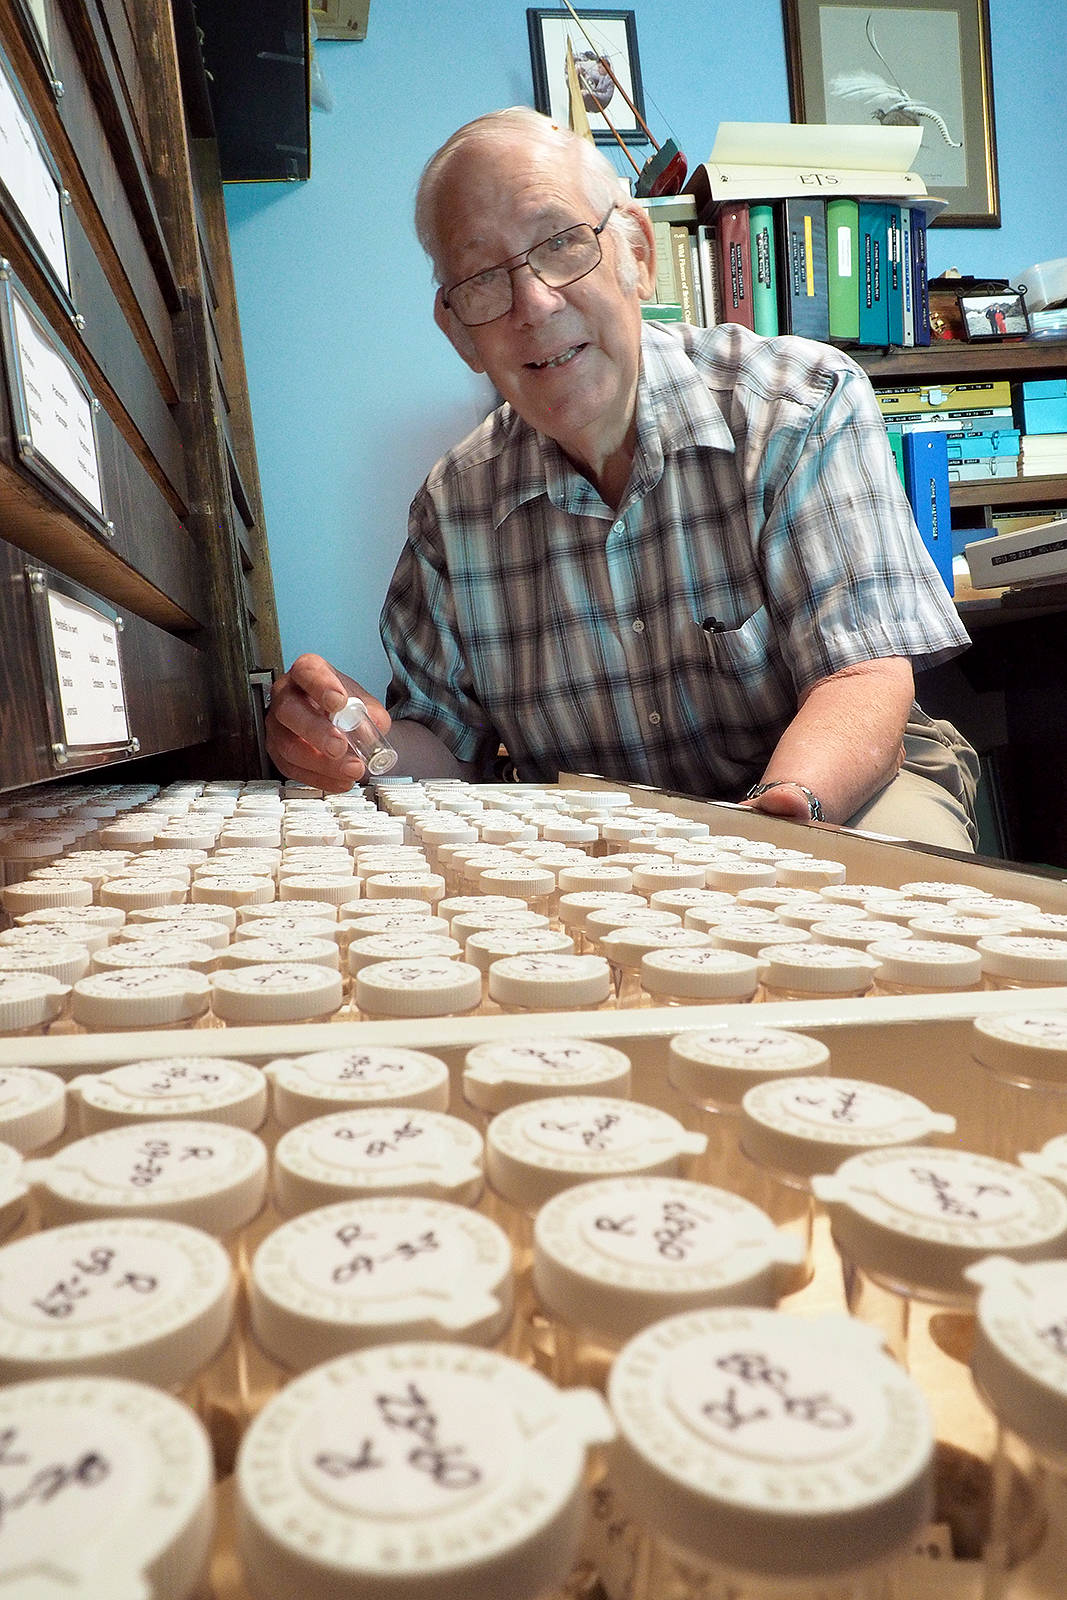 Bill Merilees,  a retired B.C. Parks regional information officer, gathered mollusk shells from B.C. and Washington State coastlines for 50 years and in that time amassed one of North America's largest collections of micro mollusks - primarily tiny snails - that are part of a larger collection that has been donated to the University of British Columbia's Beaty Biodiversity Museum. (Chris Bush/News Bulletin)